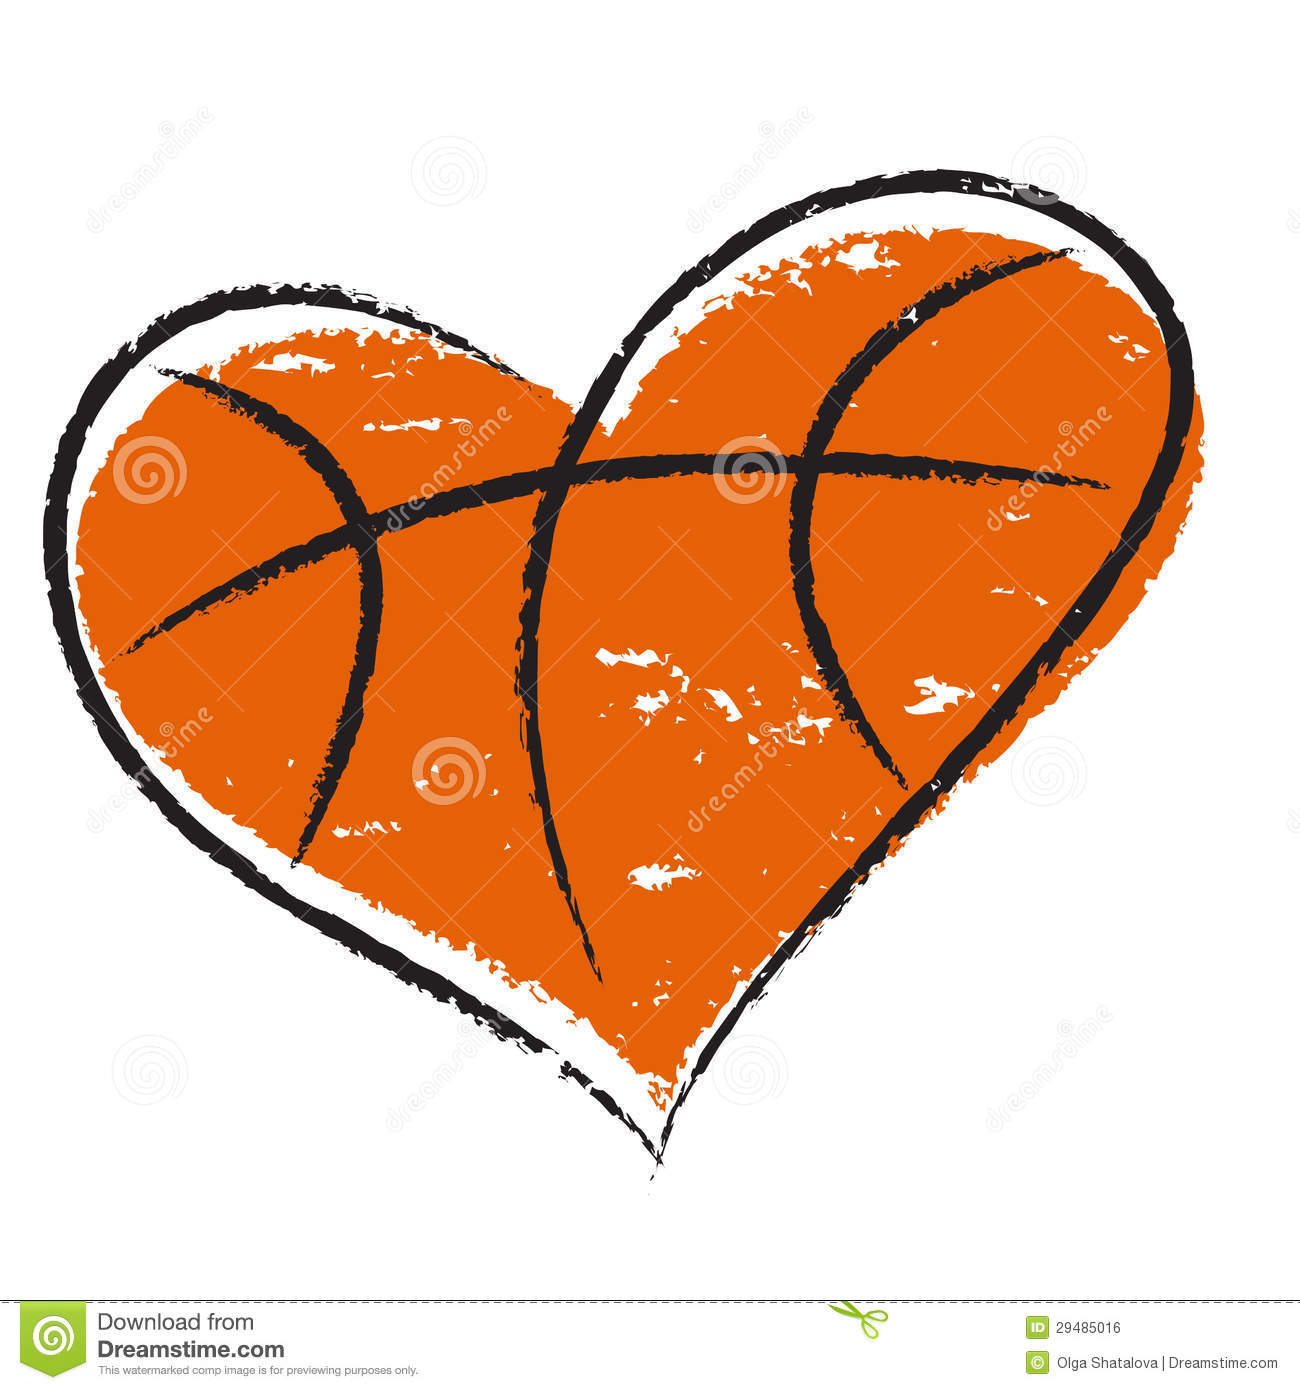 Basketball on fire clipart clipart suggest for Clipart basket